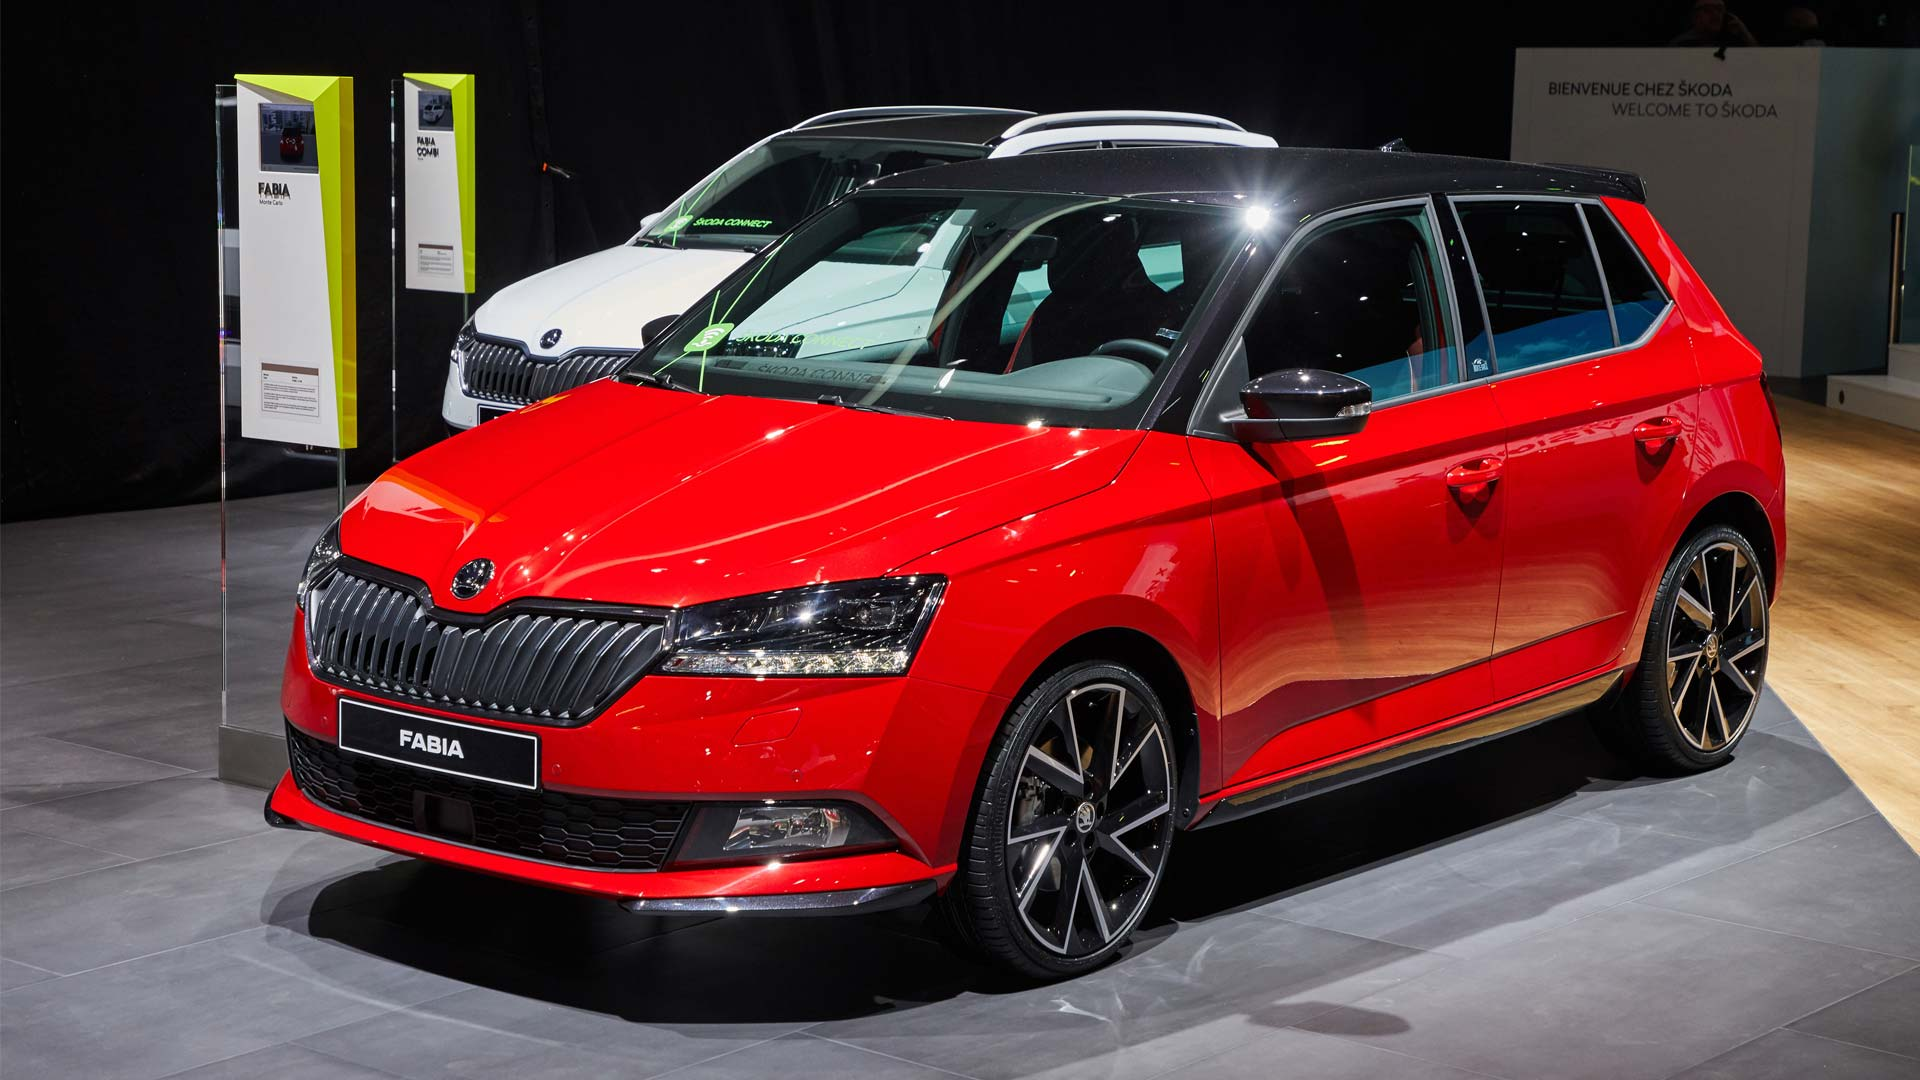 New Skoda Fabia Debuts With Stylish Looks And Tech Autodevot